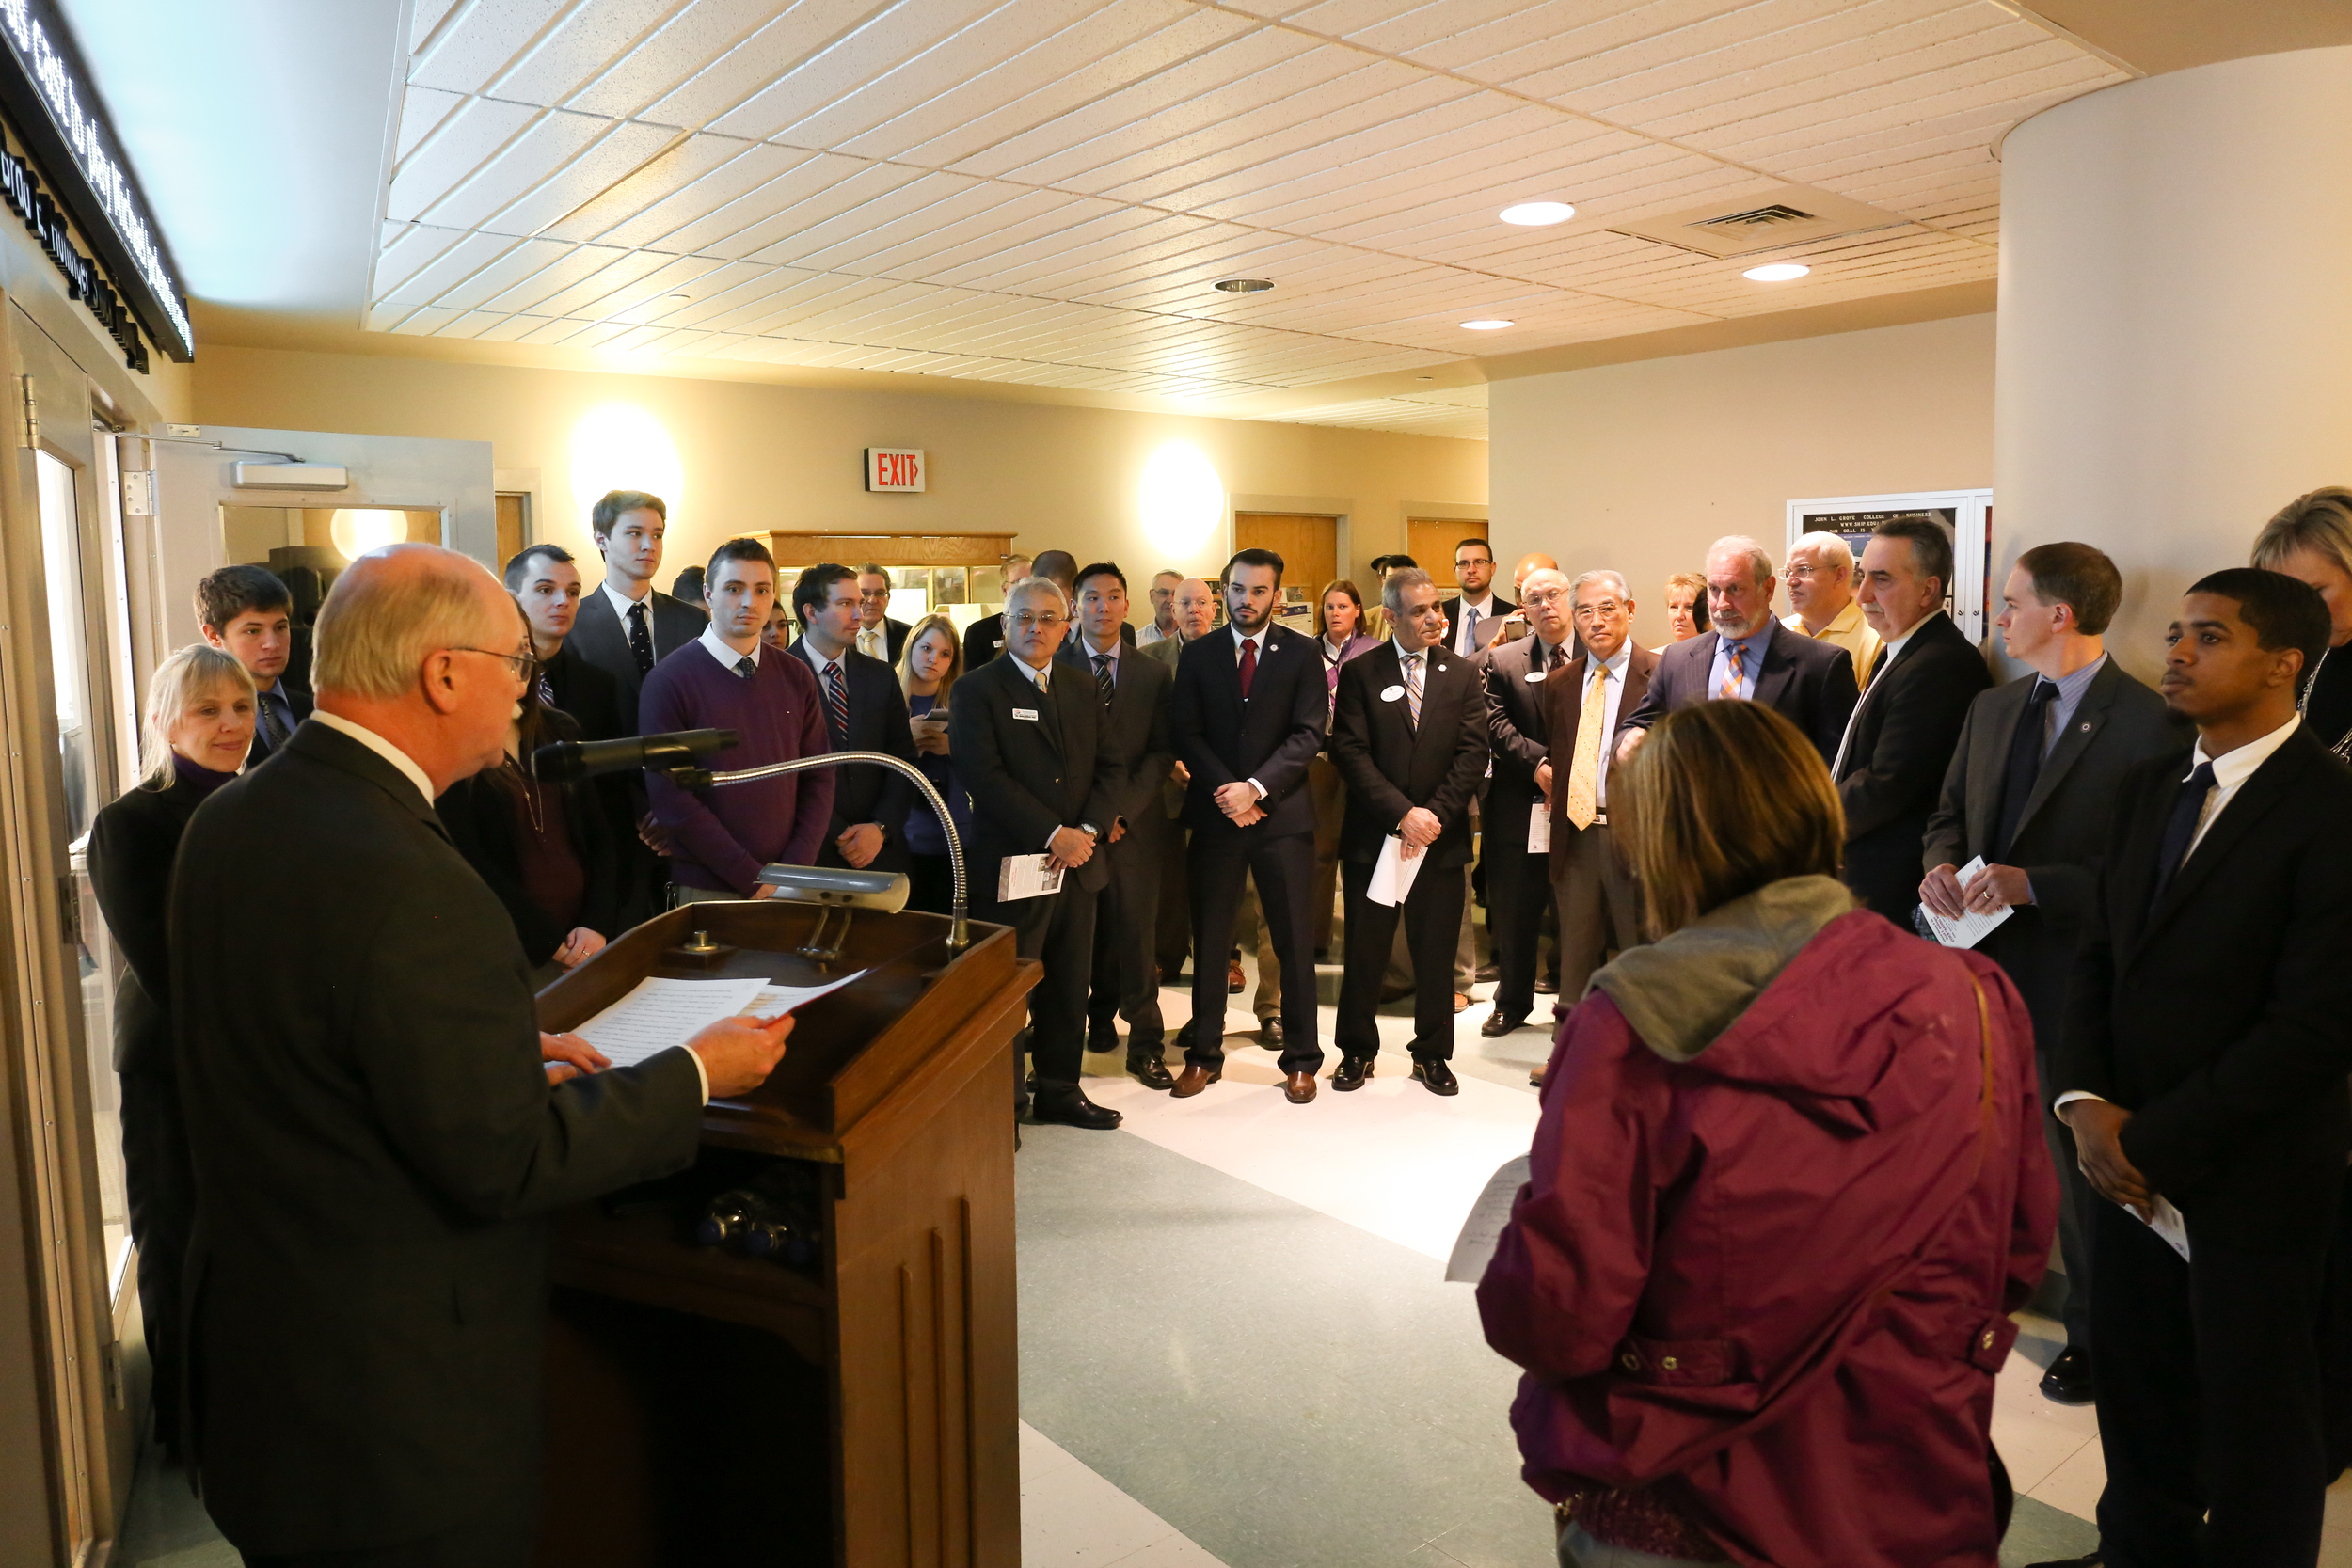 Dr. Jody Harpster '74M, president, speaks at the dedication of the new stock trading room in Grove College.